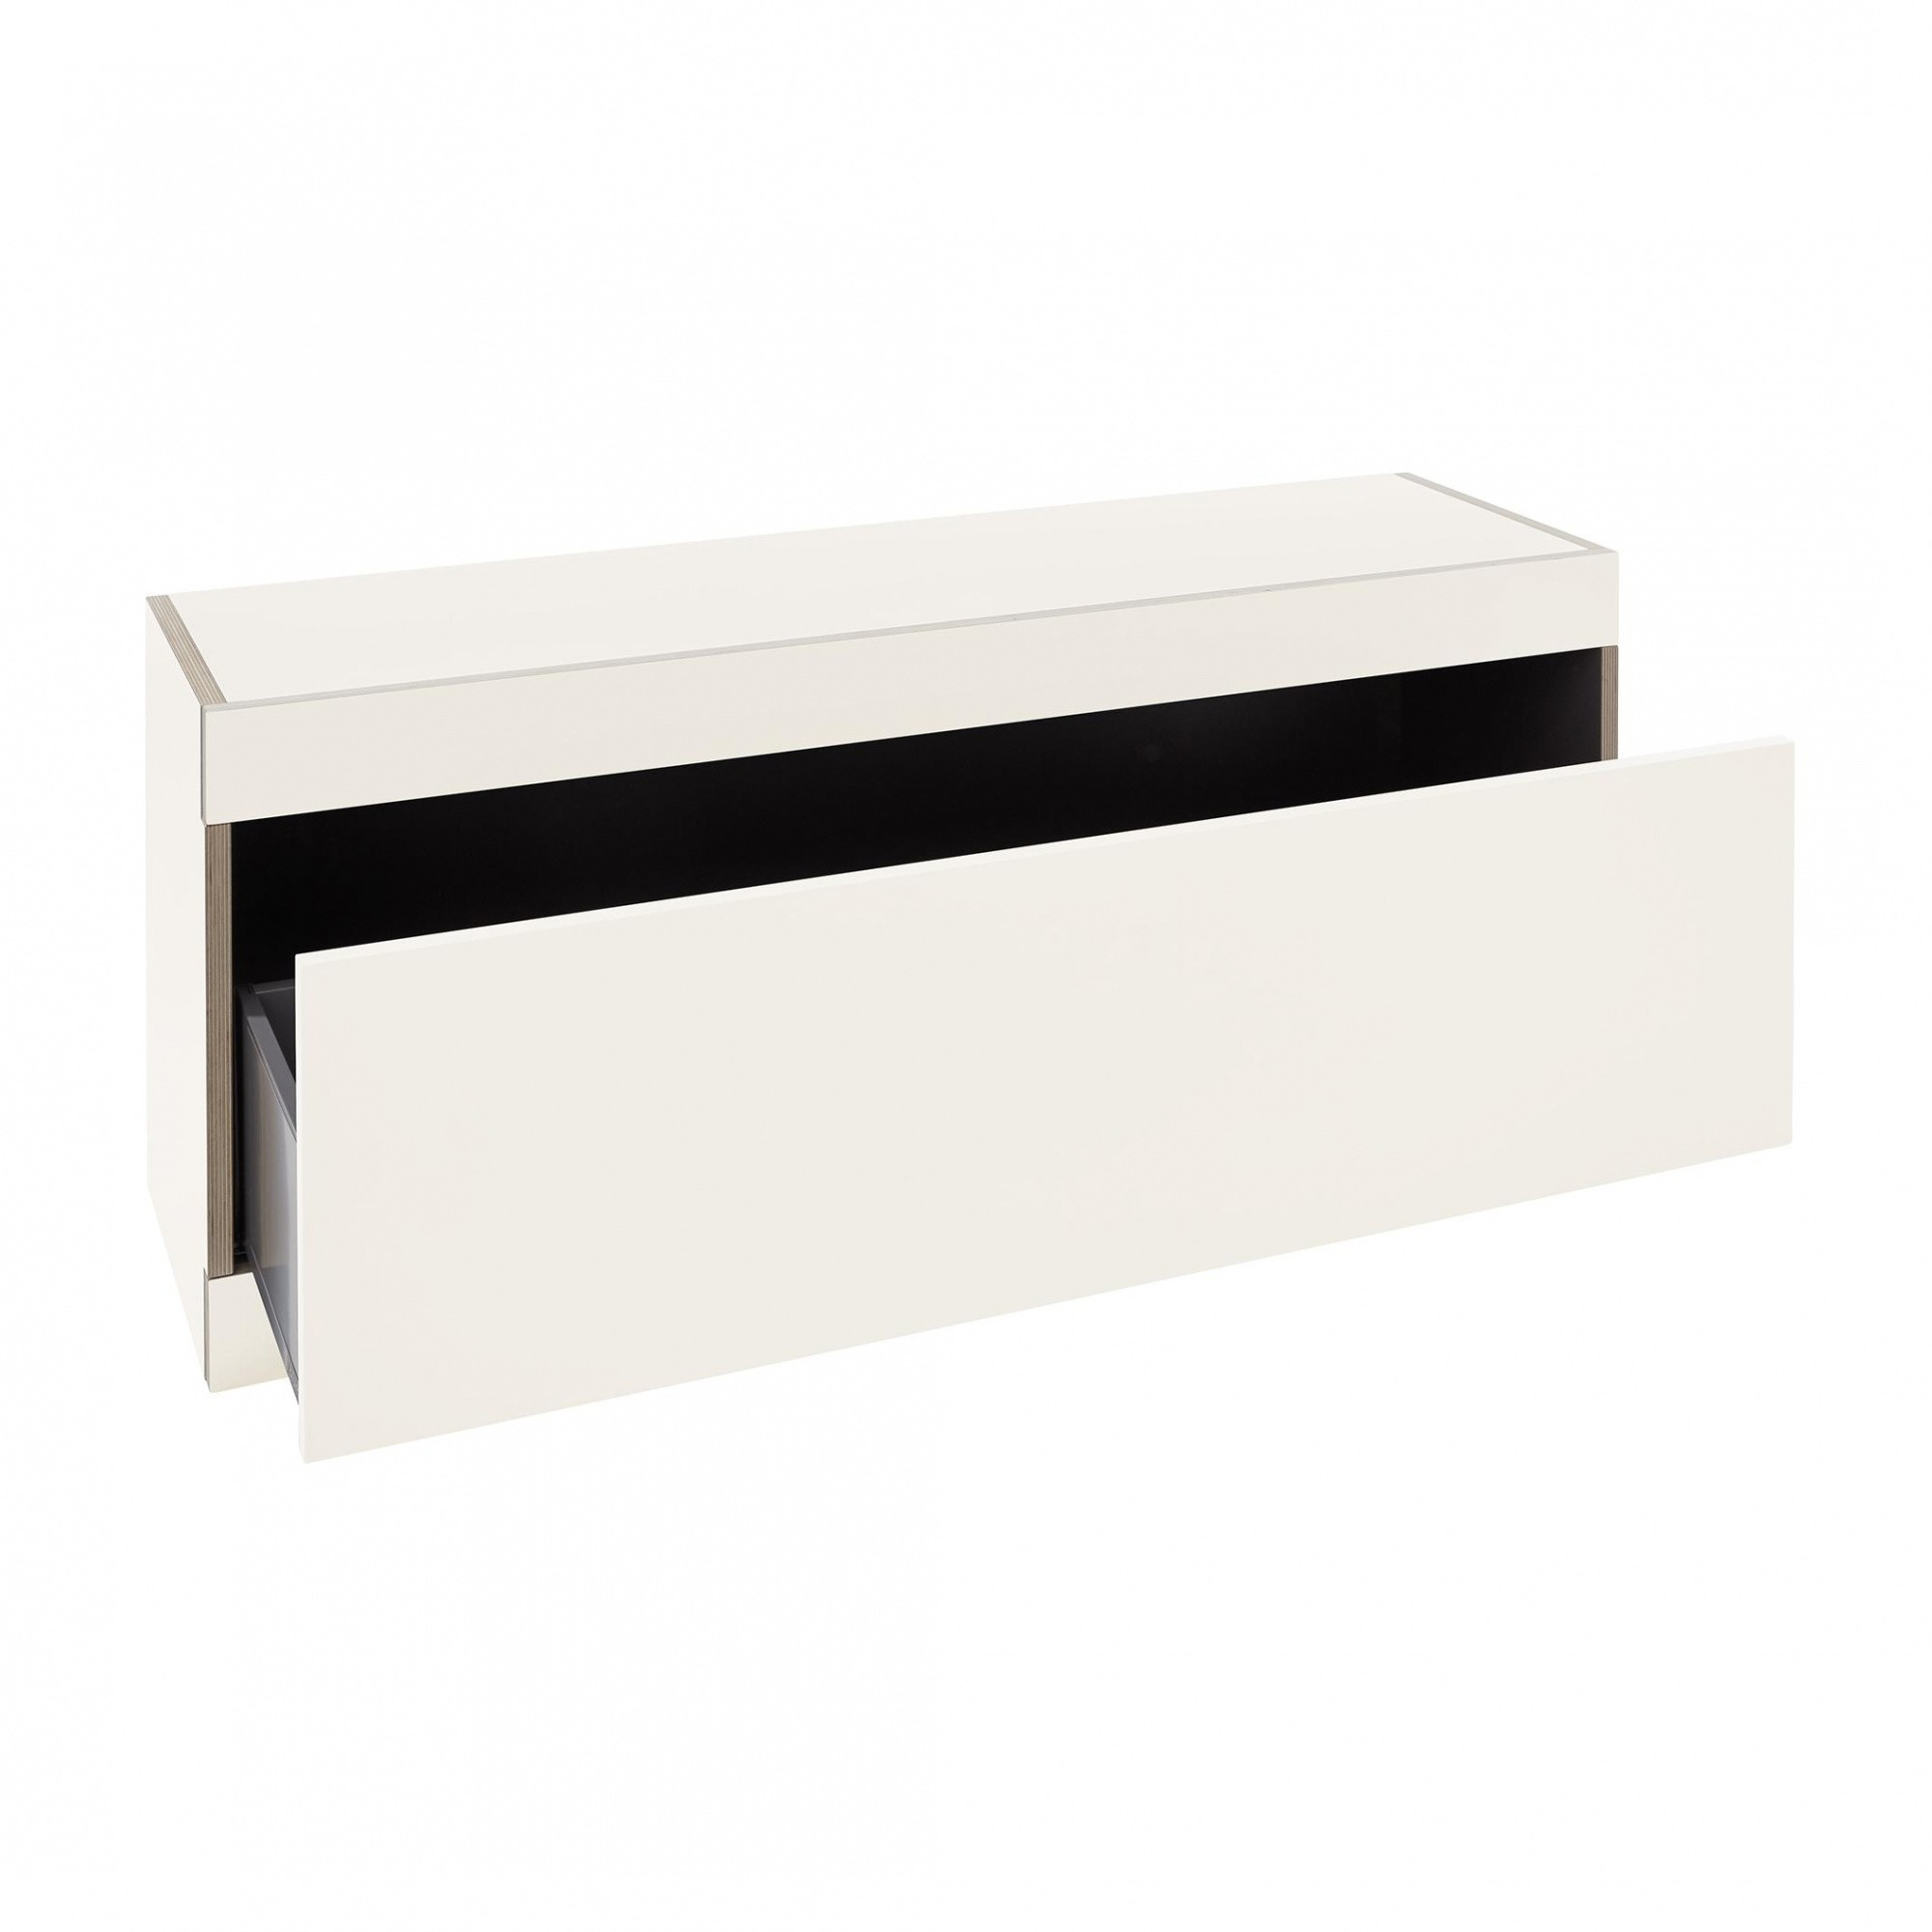 Muller Small Living Flai Storage Bench With Drawer Ambientedirect